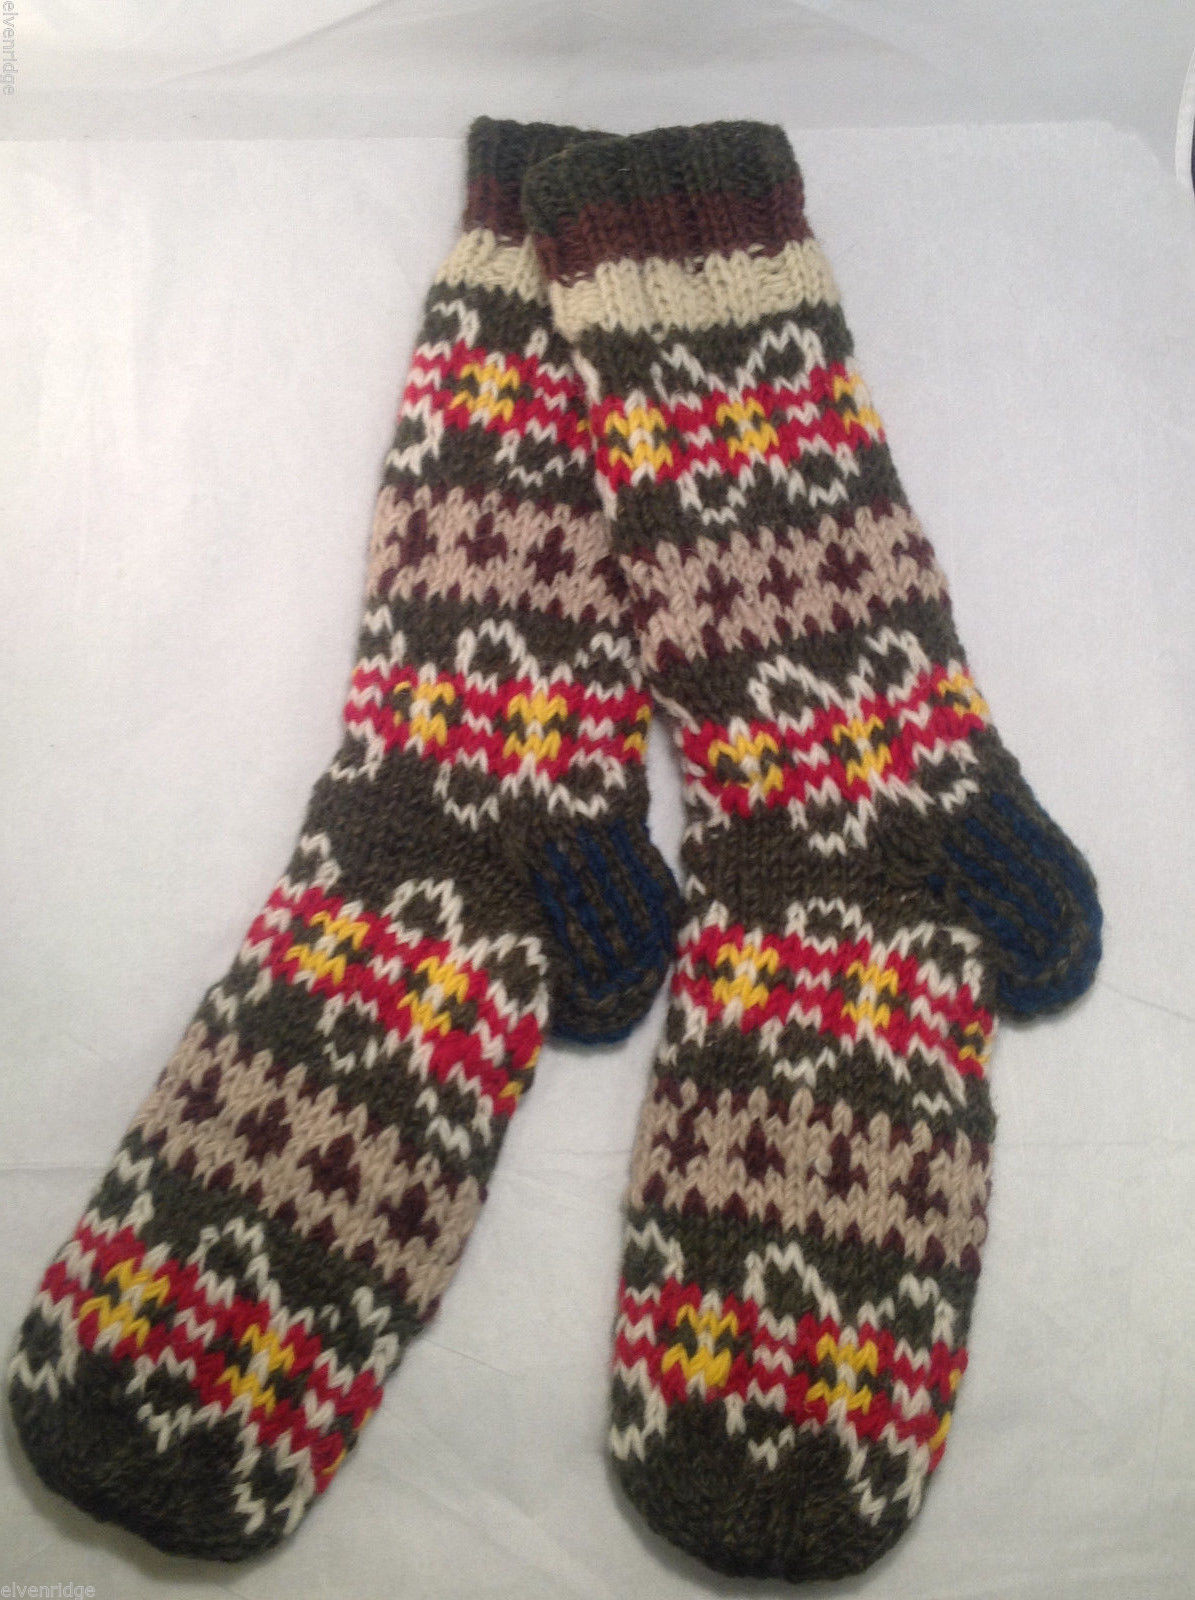 Socks Hand-Knit in Nepal Unisex Men Women Green Brown Red Patterned Colored